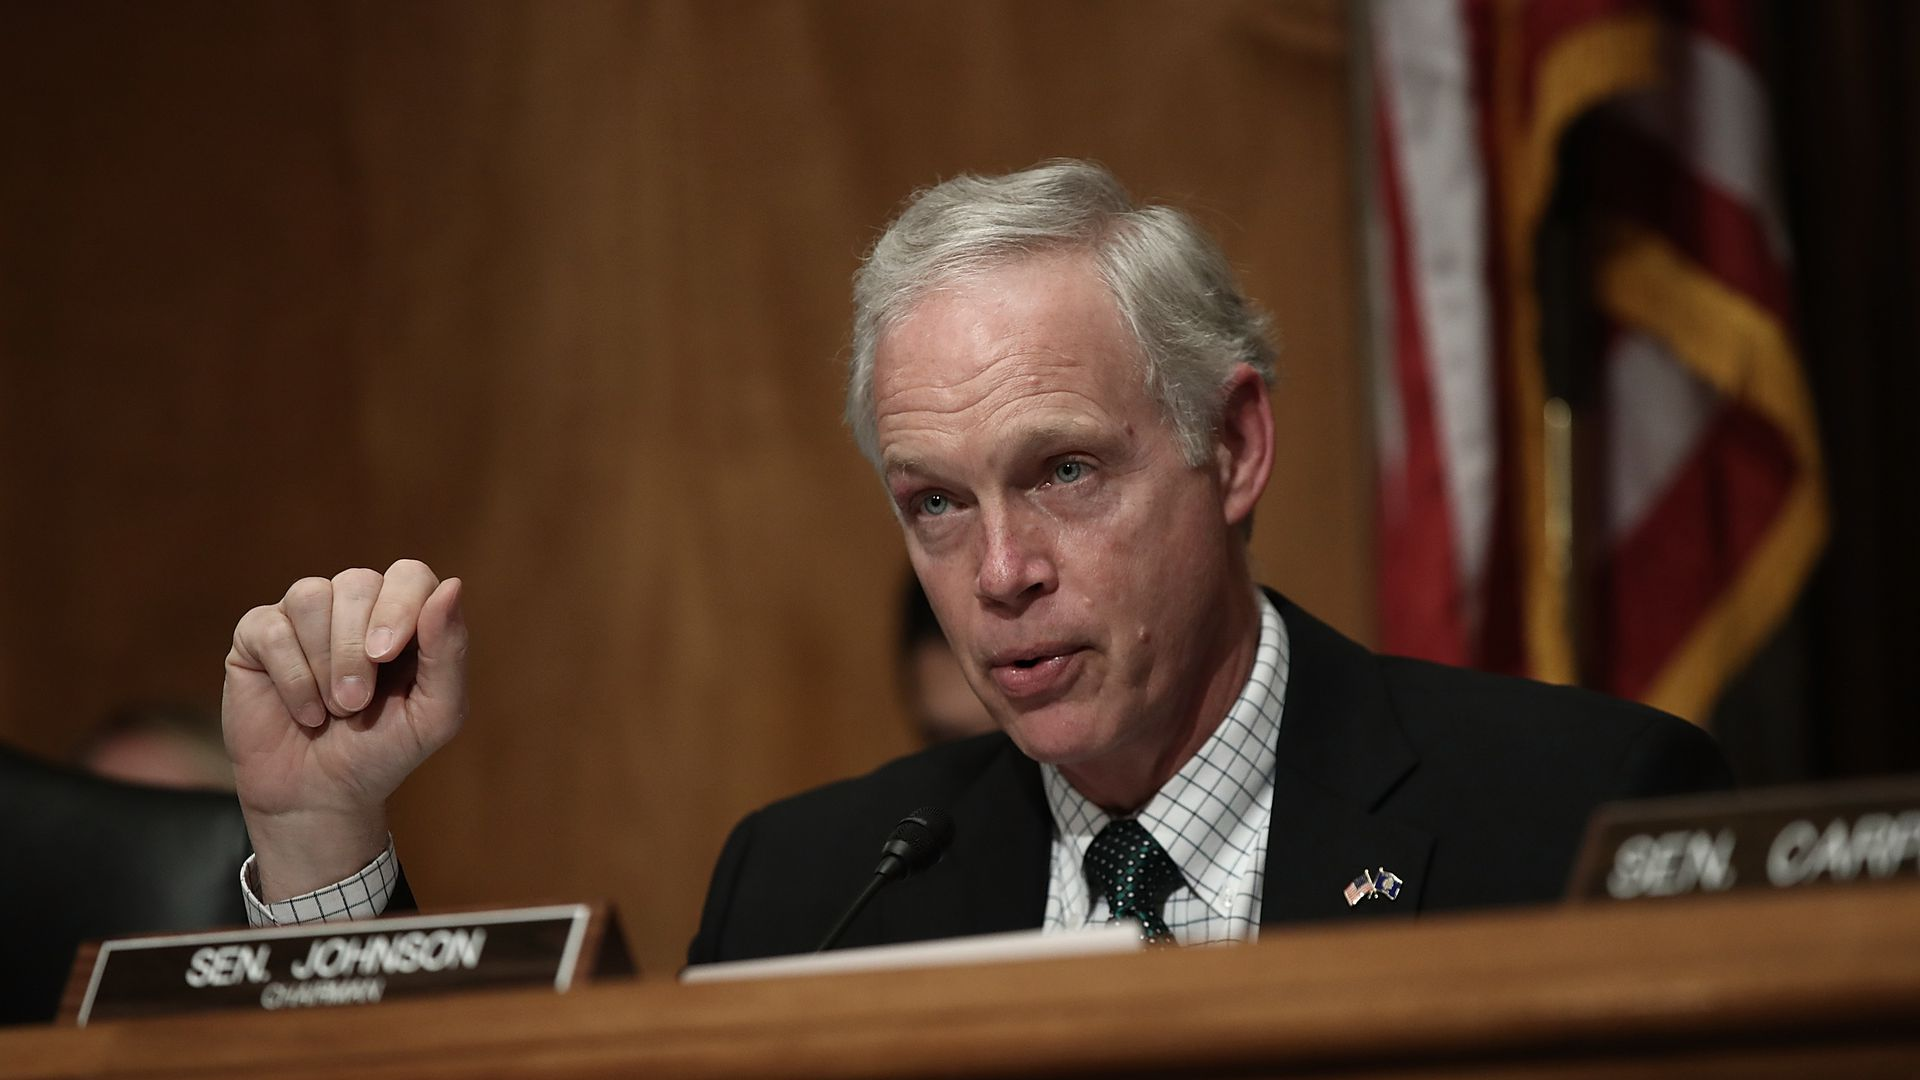 Senator Ron Johnson sits in front of his nameplate on a dais.